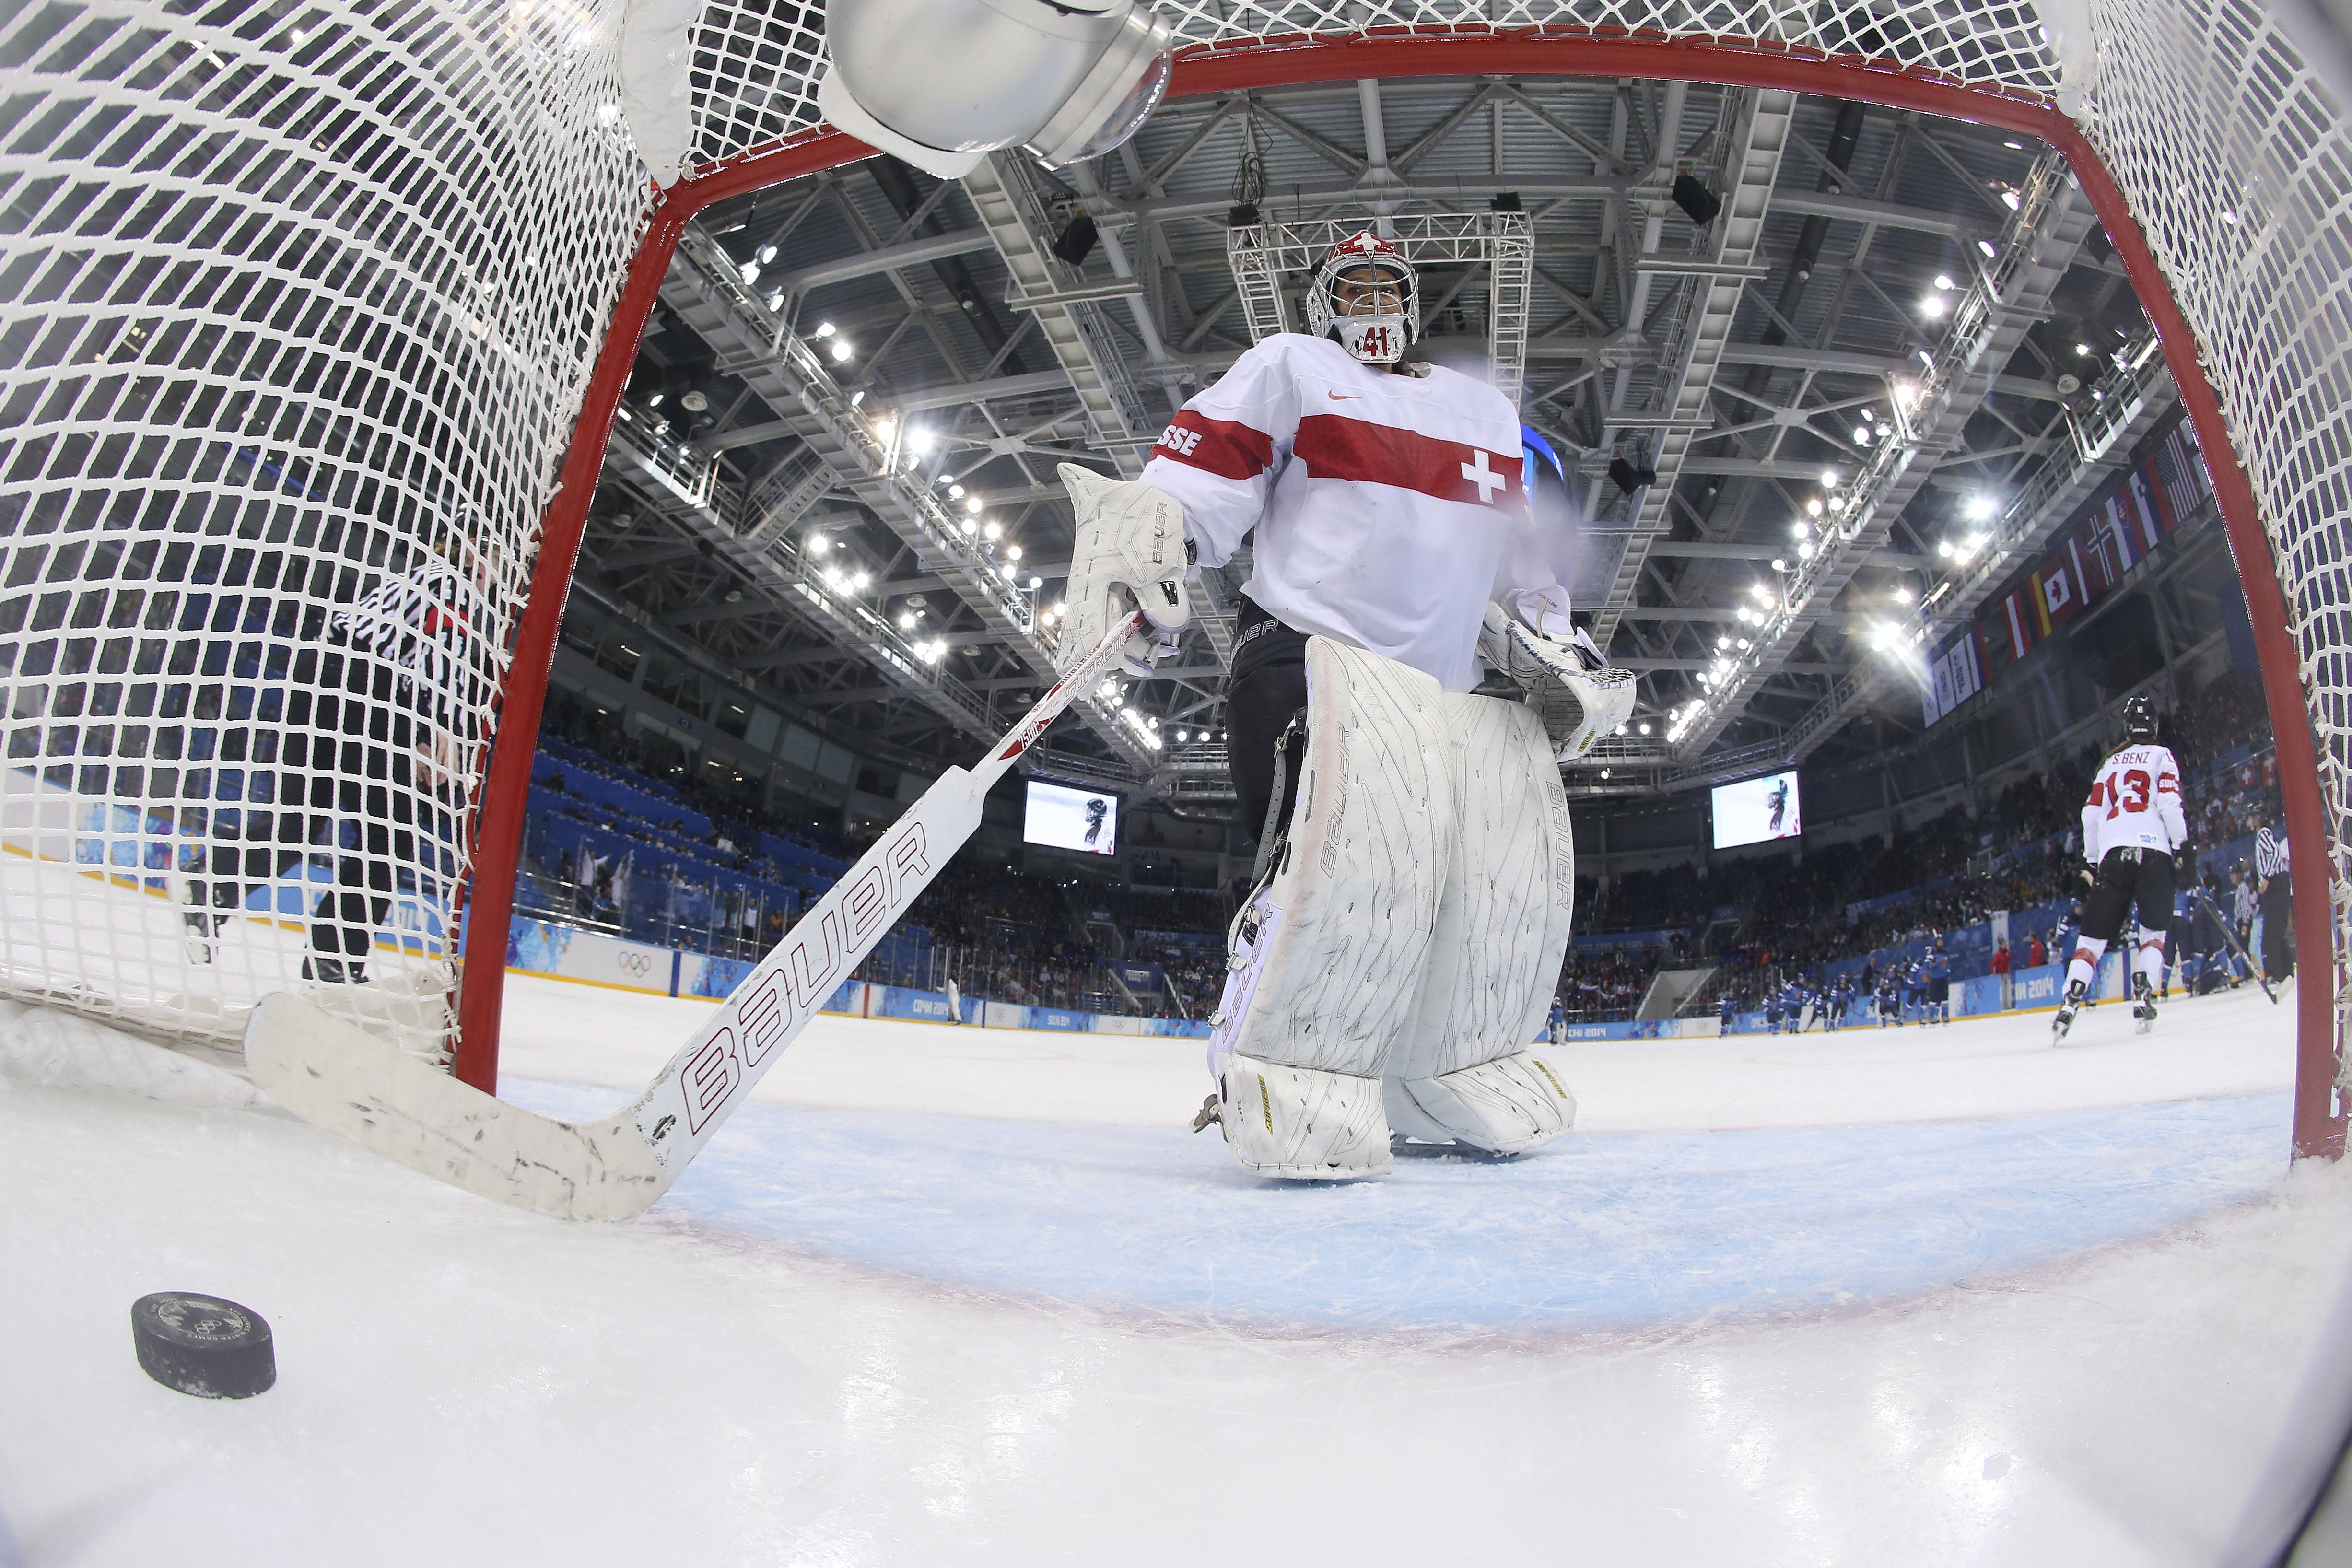 Goalkeeper Florence Schelling of Switzerland scoops the puck out of the net Wednesday after Jenni Hiirikoski of Finland scored in overtime to give Finland a 4-3 victory at the 2014 Winter Olympics in Sochi, Russia.